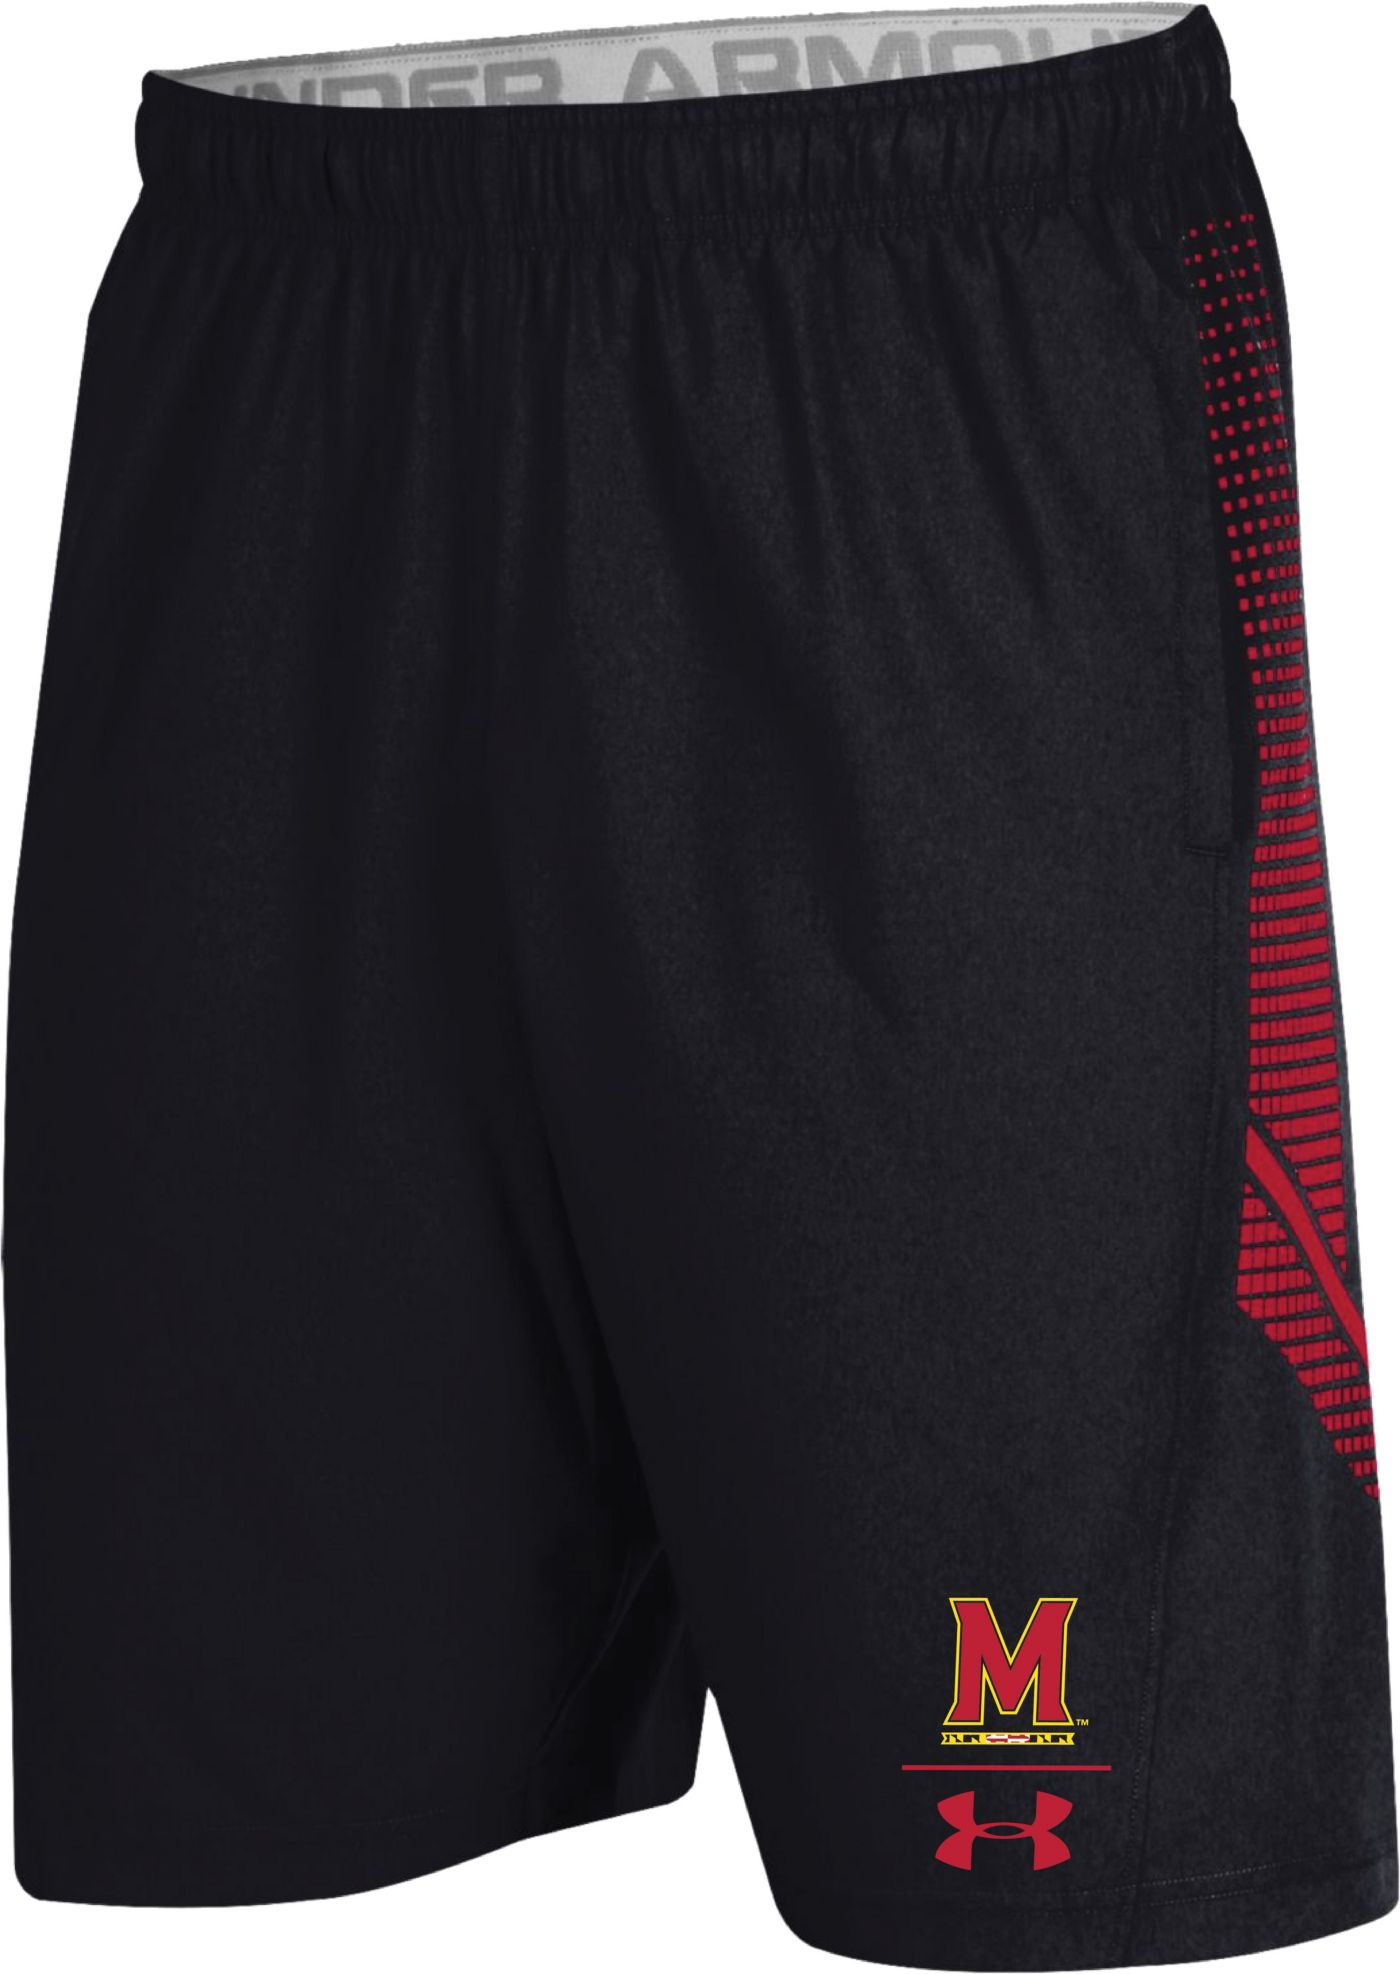 Under Armour Men's Maryland Terrapins Sideline Pinnacle Black Shorts